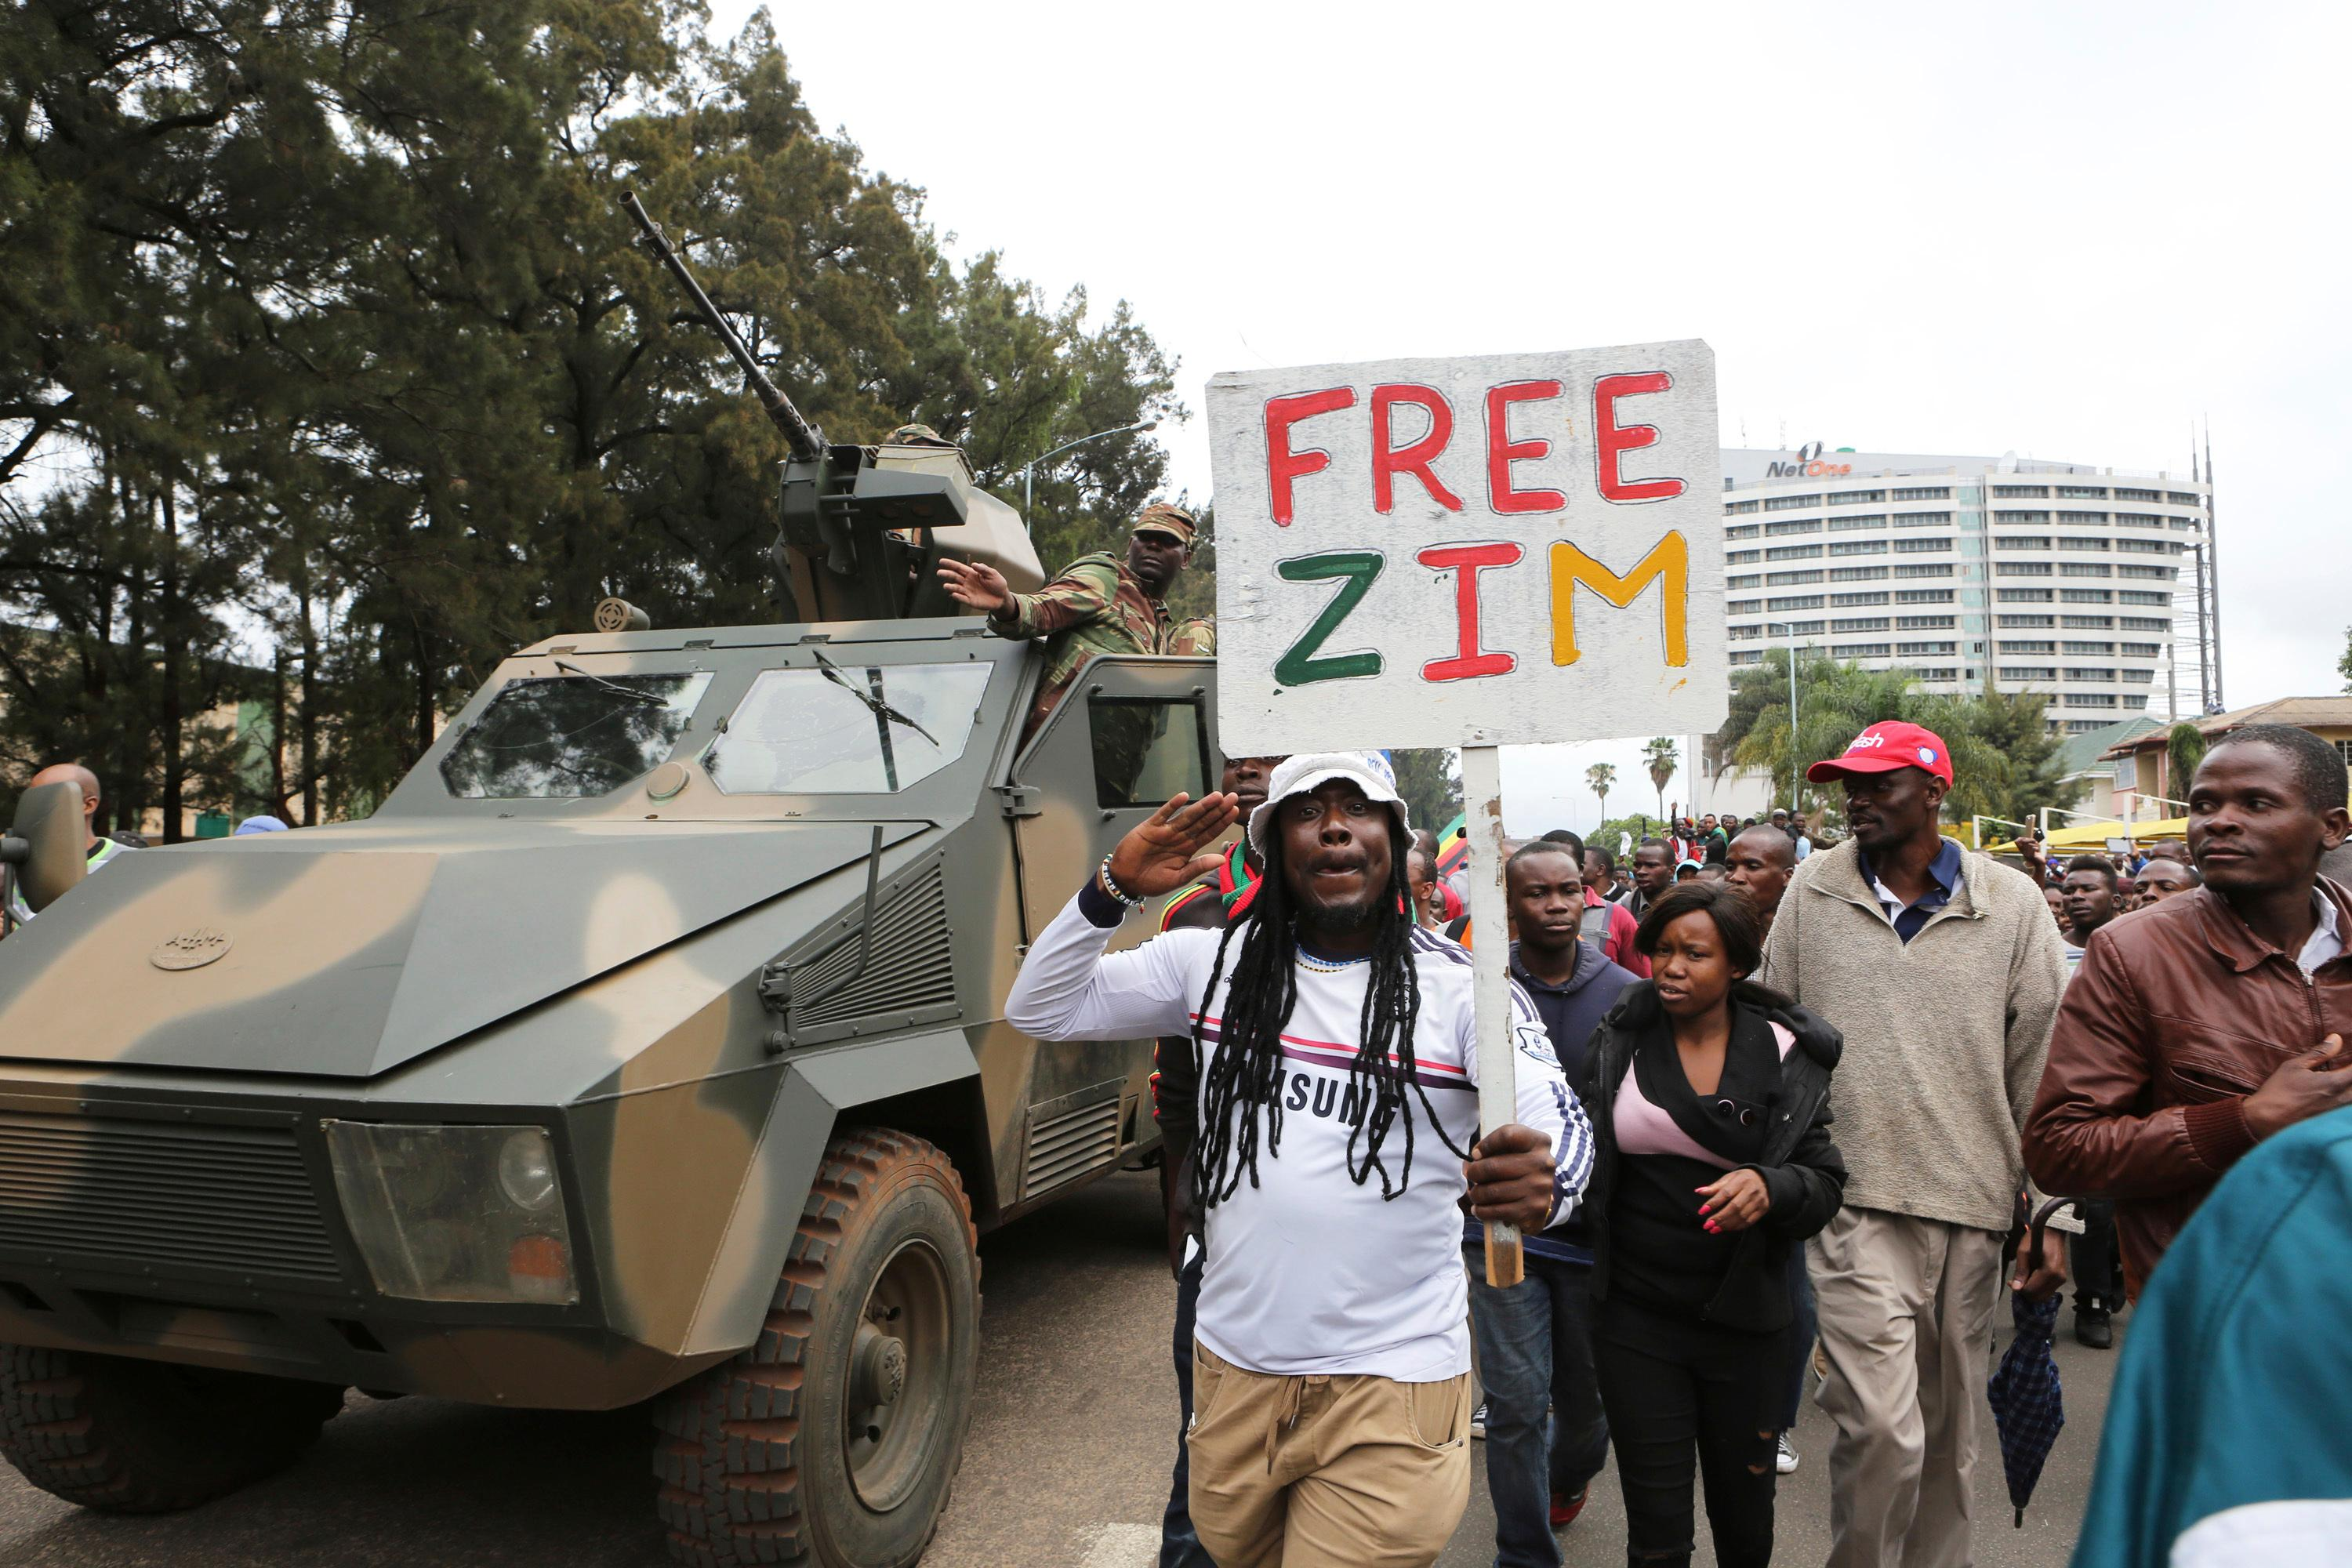 Euphoric crowds march on the streets of Harare, demanding the departure of President Robert Mugabe, Saturday Nov, 18, 2017. The military, which put Mugabe under house arrest this week, has approved the demonstration that includes people from across the political spectrum. (AP Photo/Tsvangirayi Mukwazhi)